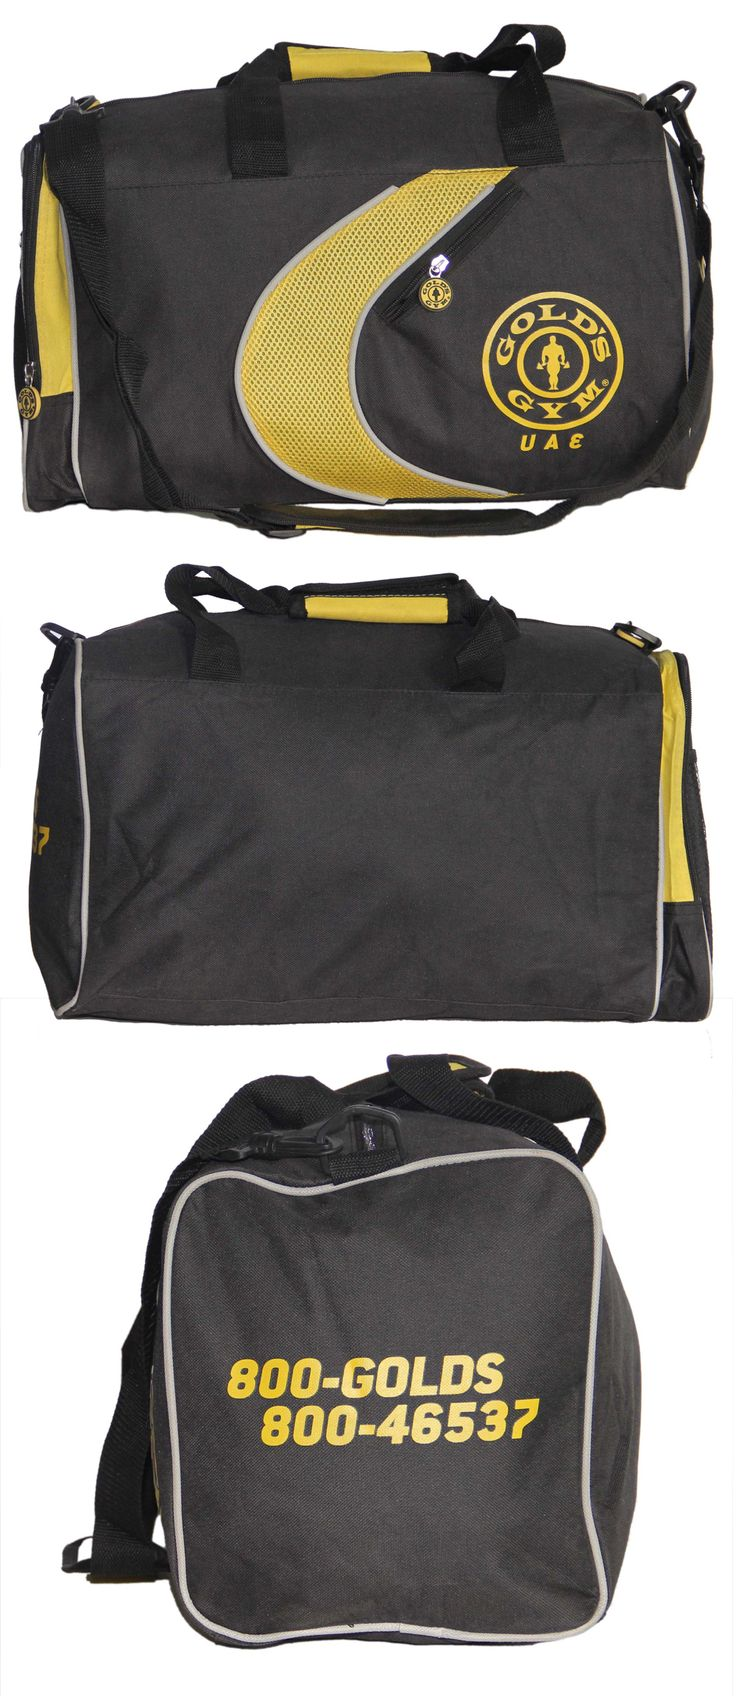 Gym Bag exclusively manufactured for Golds Gym (UAE) by Crea - India's smartest brand merchandising company.